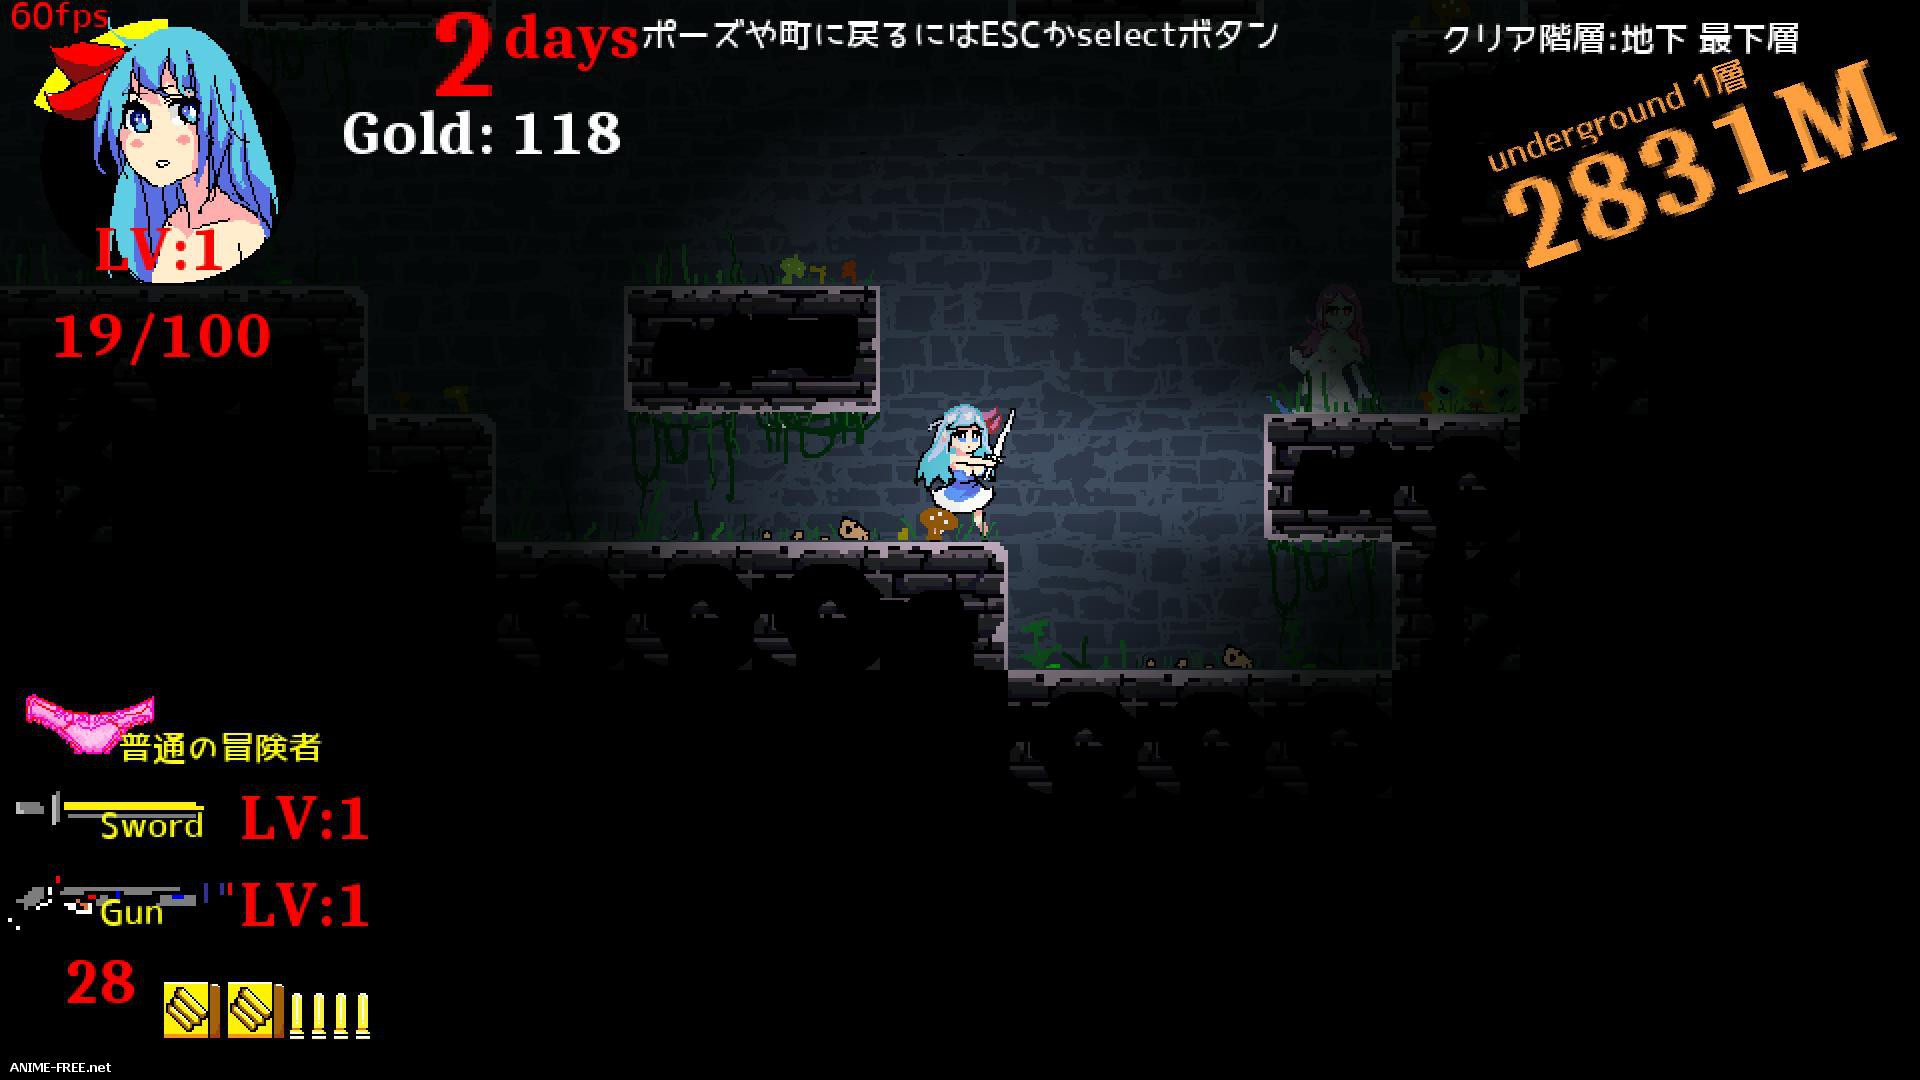 Abyss Crawlers [2017] [Cen] [Action, 2D, Dot/Pixel] [JAP] H-Game